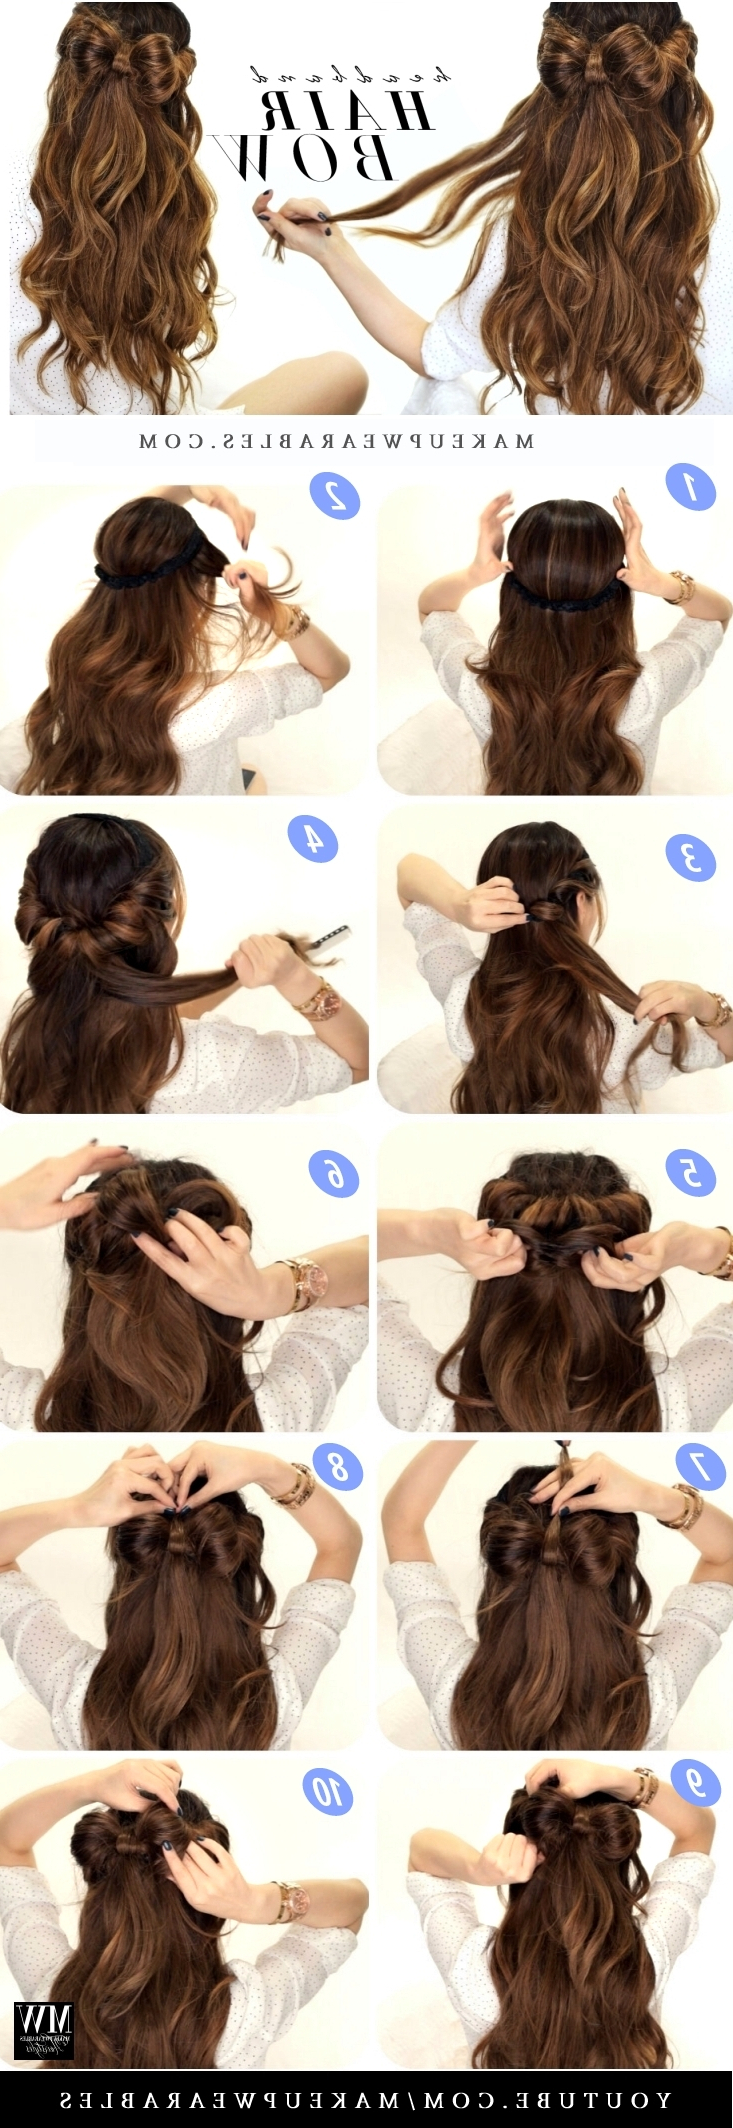 Everyday Hairstyles For Trendy Ponytail Bridal Hairstyles With Headband And Bow (View 5 of 20)